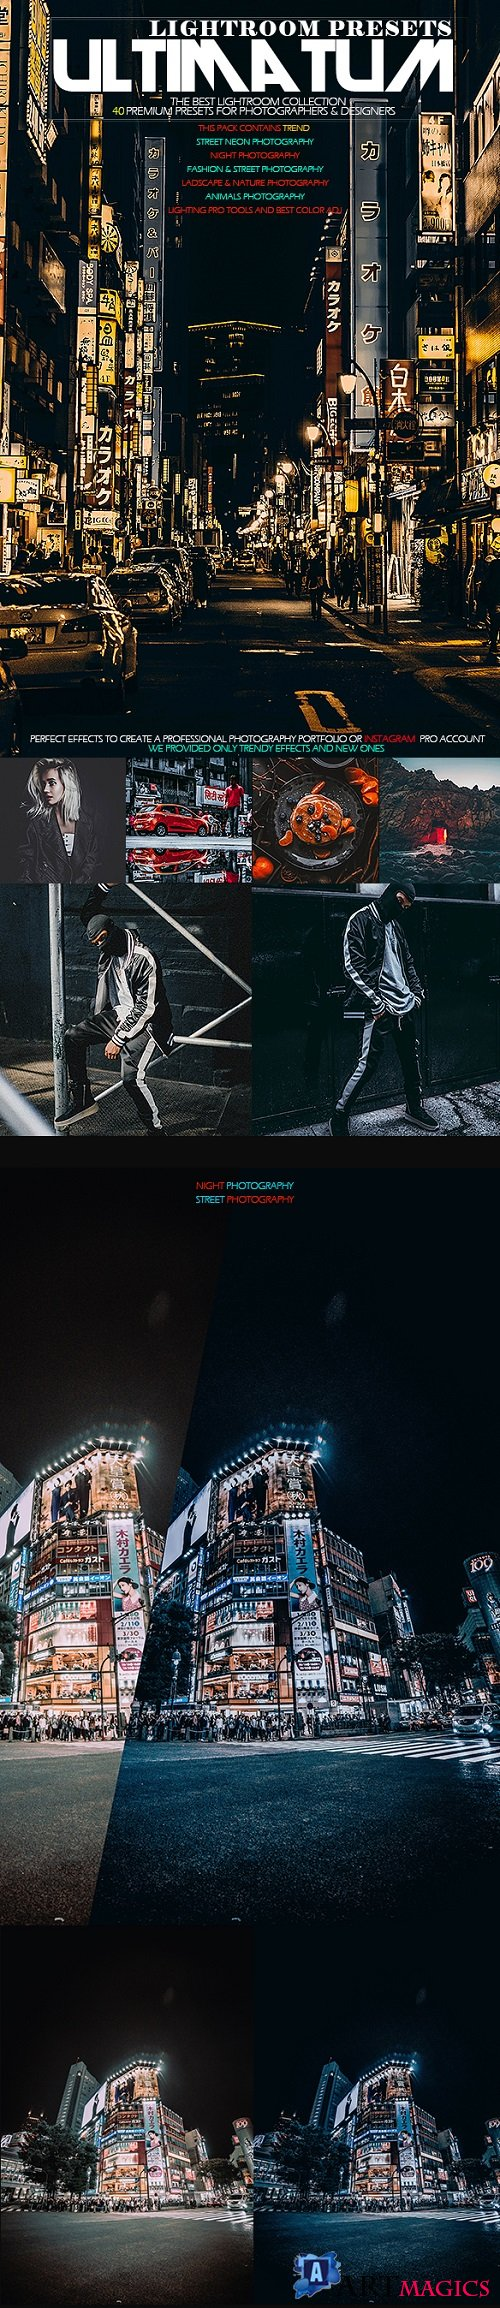 Ultimatum Lightroom Presets 20663166